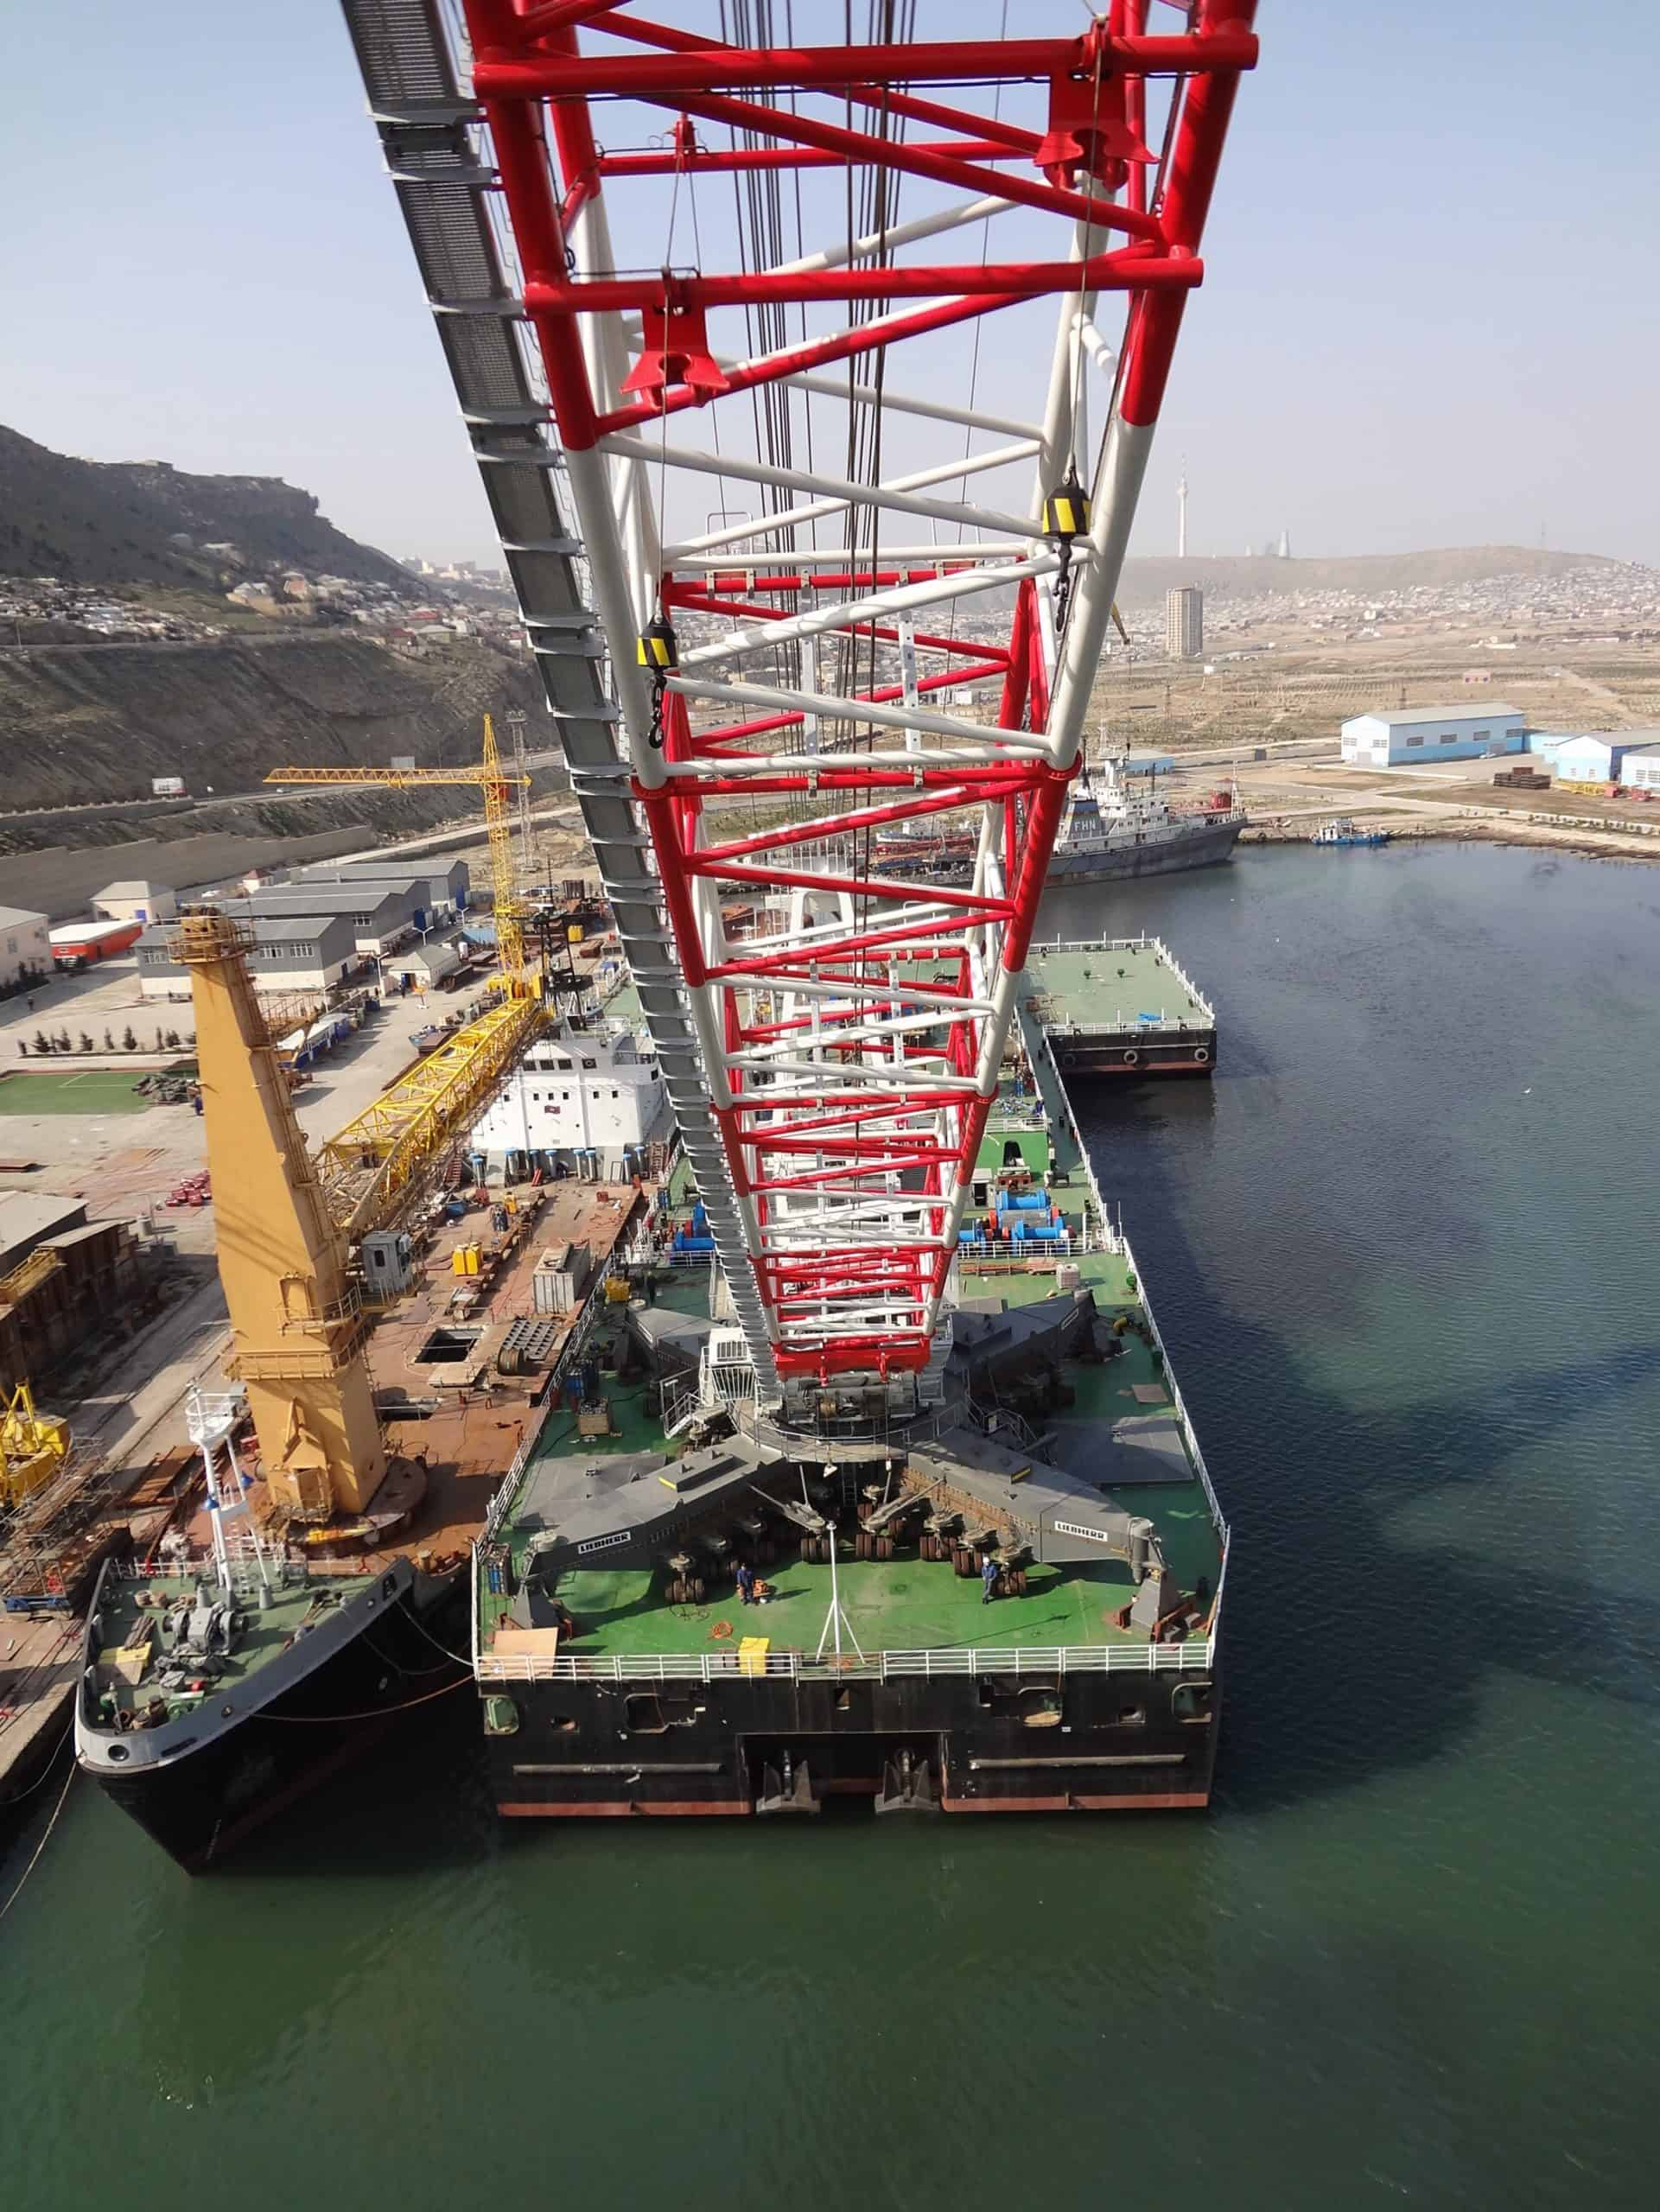 Liebherr's innovative combined offshore and mobile harbour crane